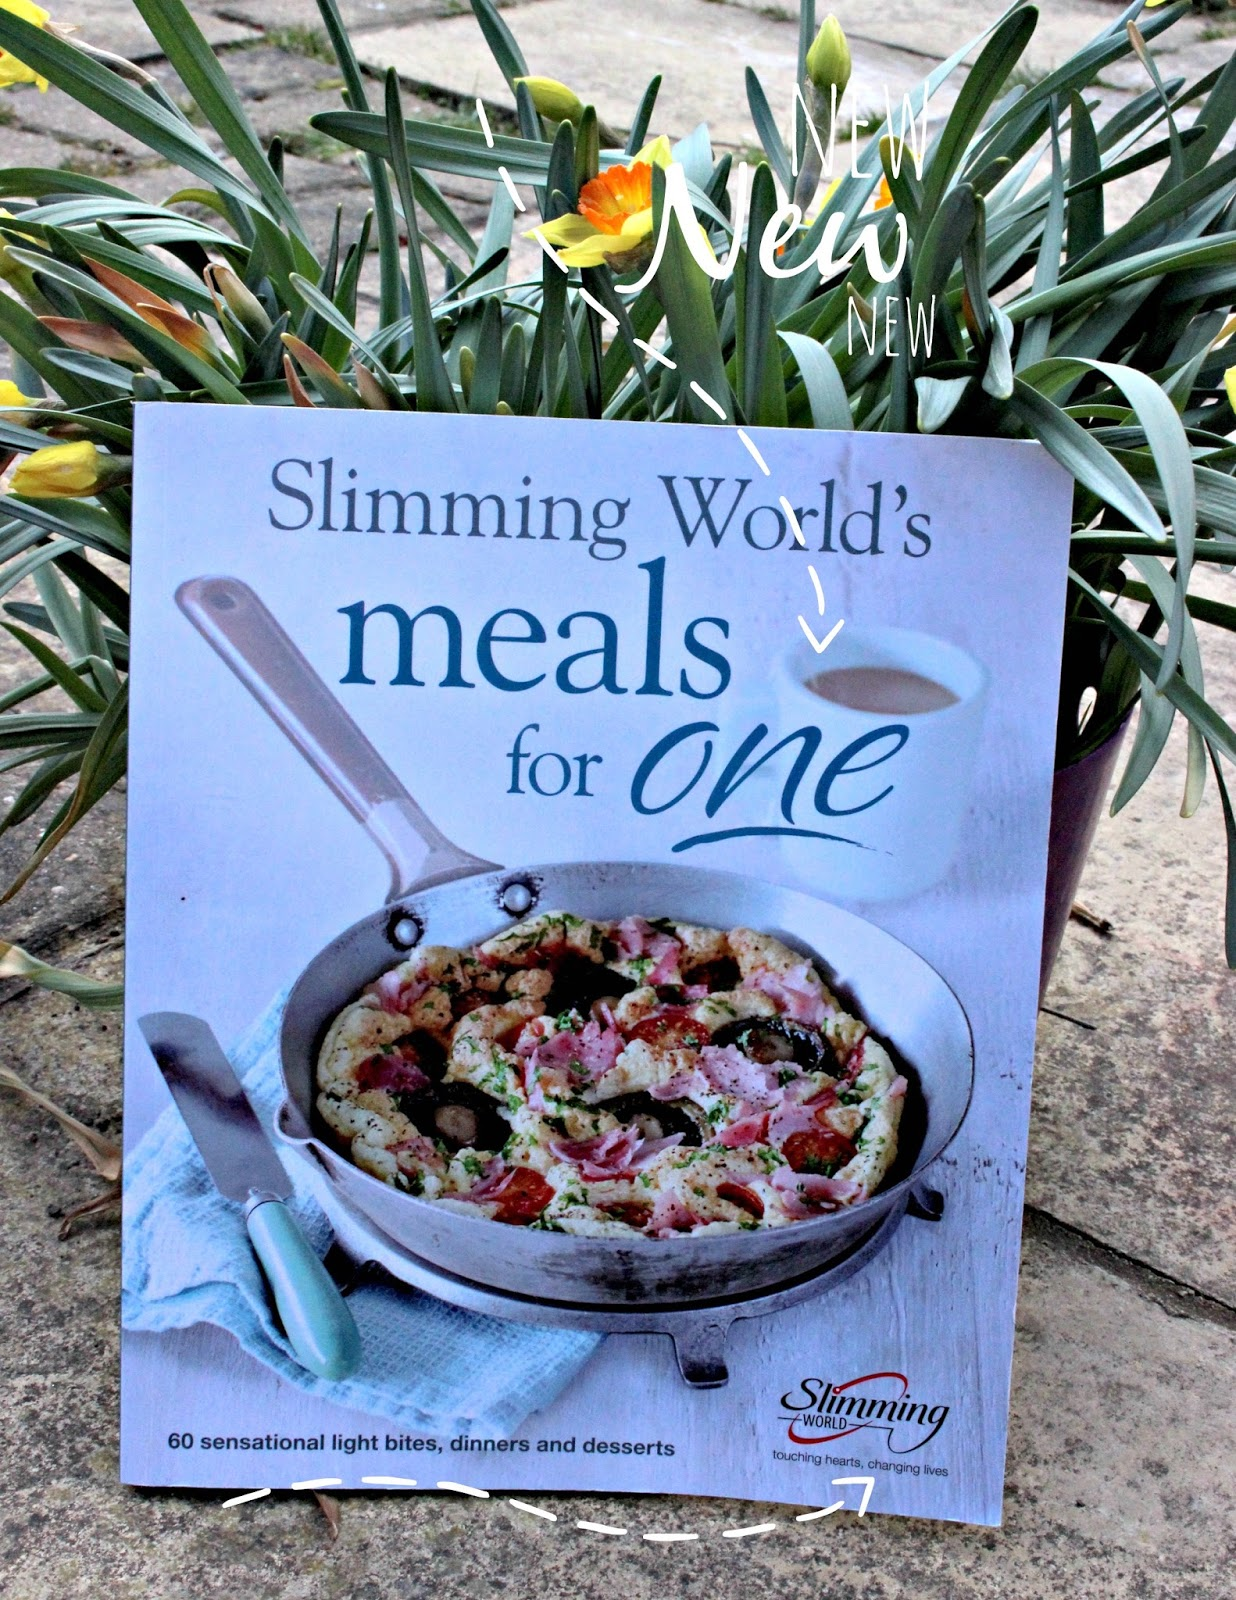 Meals for one eating alone has never been so good emah One you slimming world